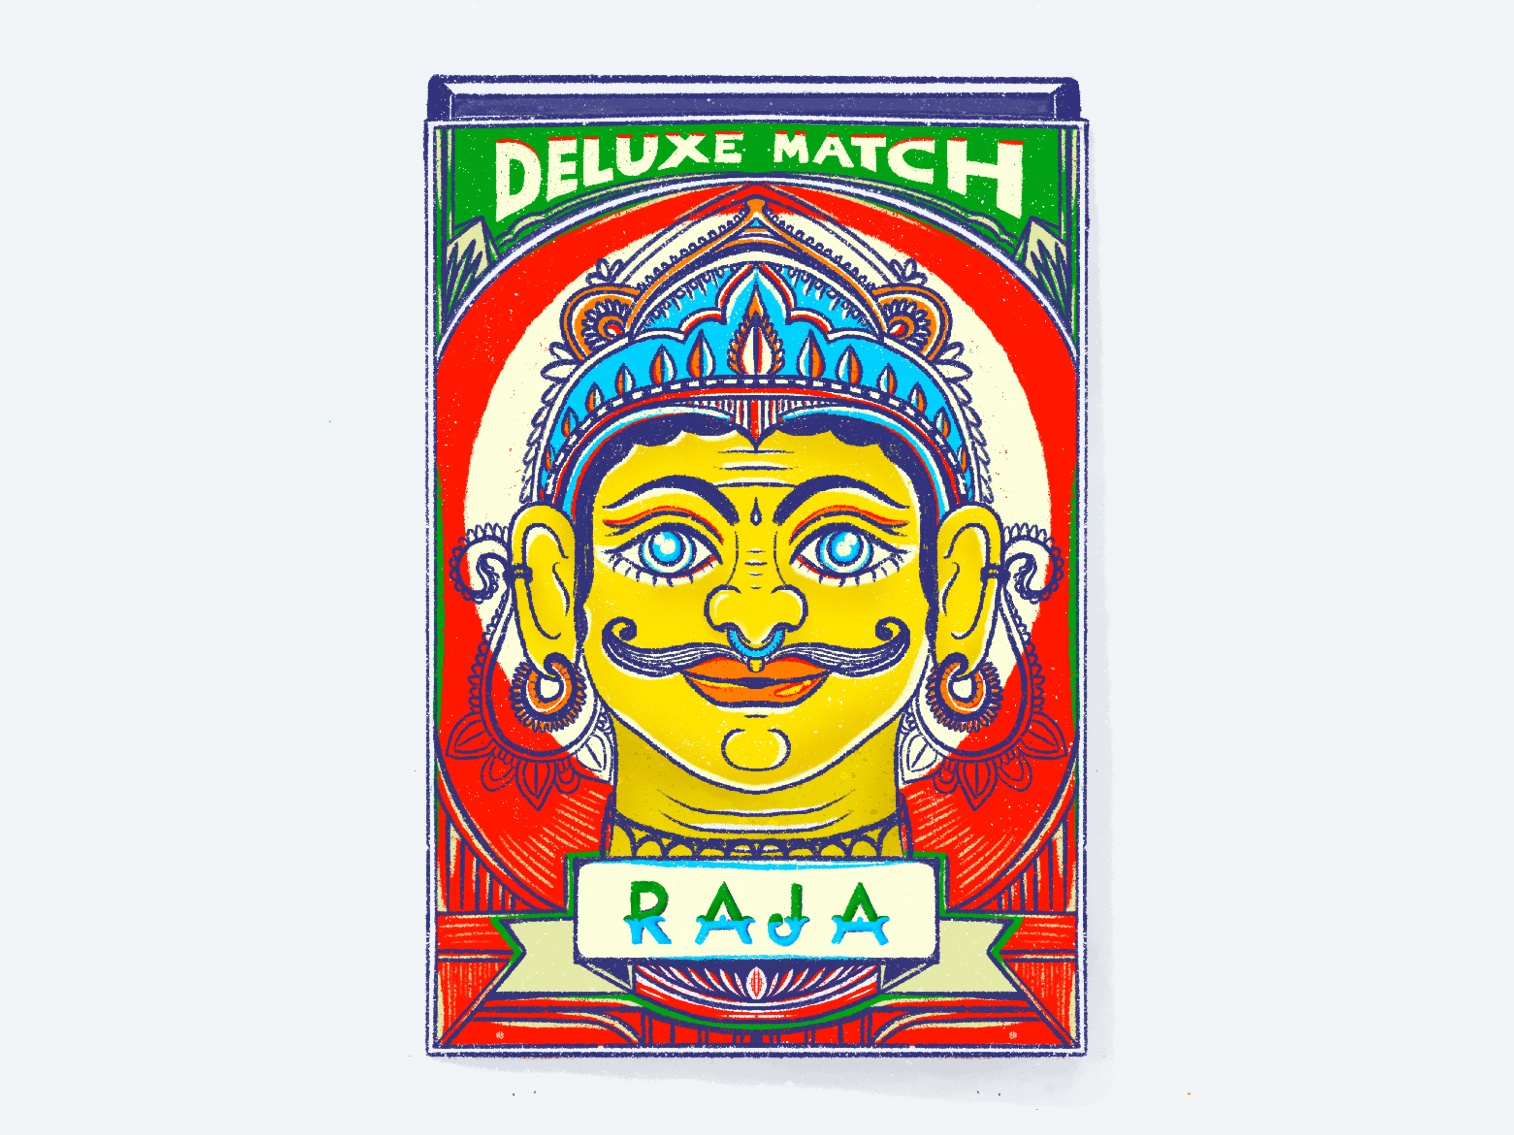 Raja A Deluxe Match raja band bold color symetry procreate match box india retro illustration